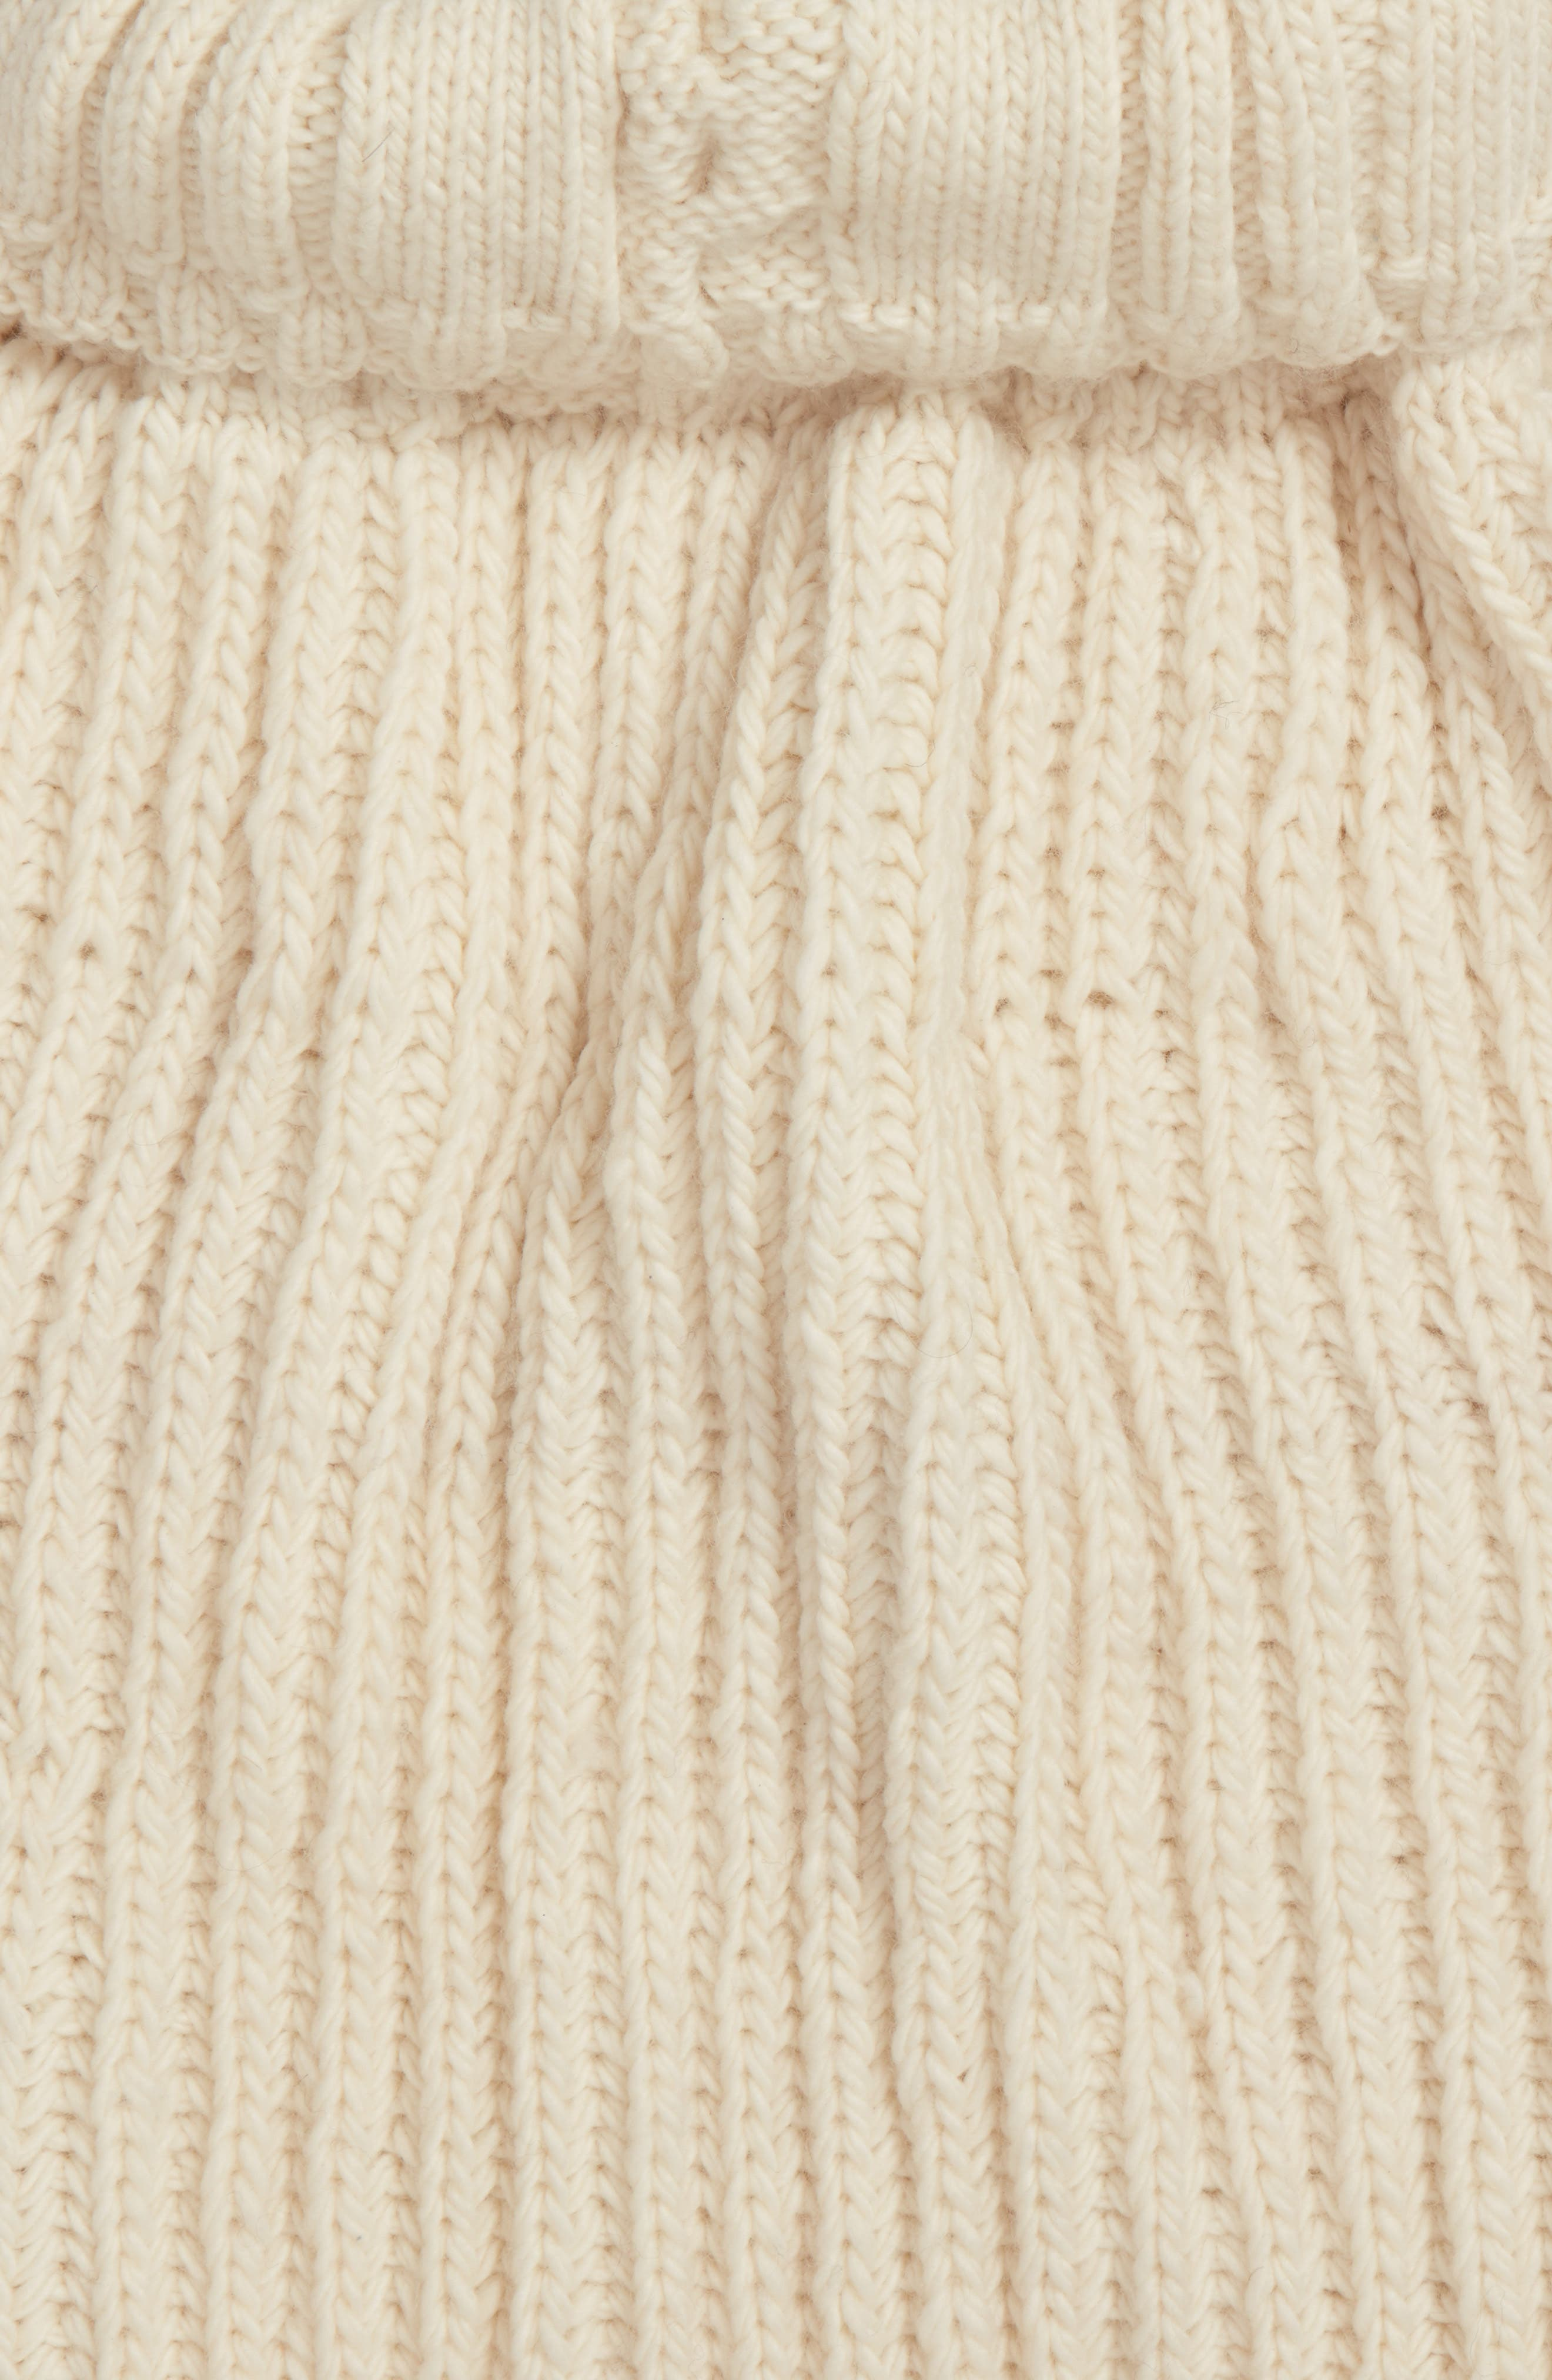 Oversize Cable Knit Wool Infinity Scarf,                             Alternate thumbnail 8, color,